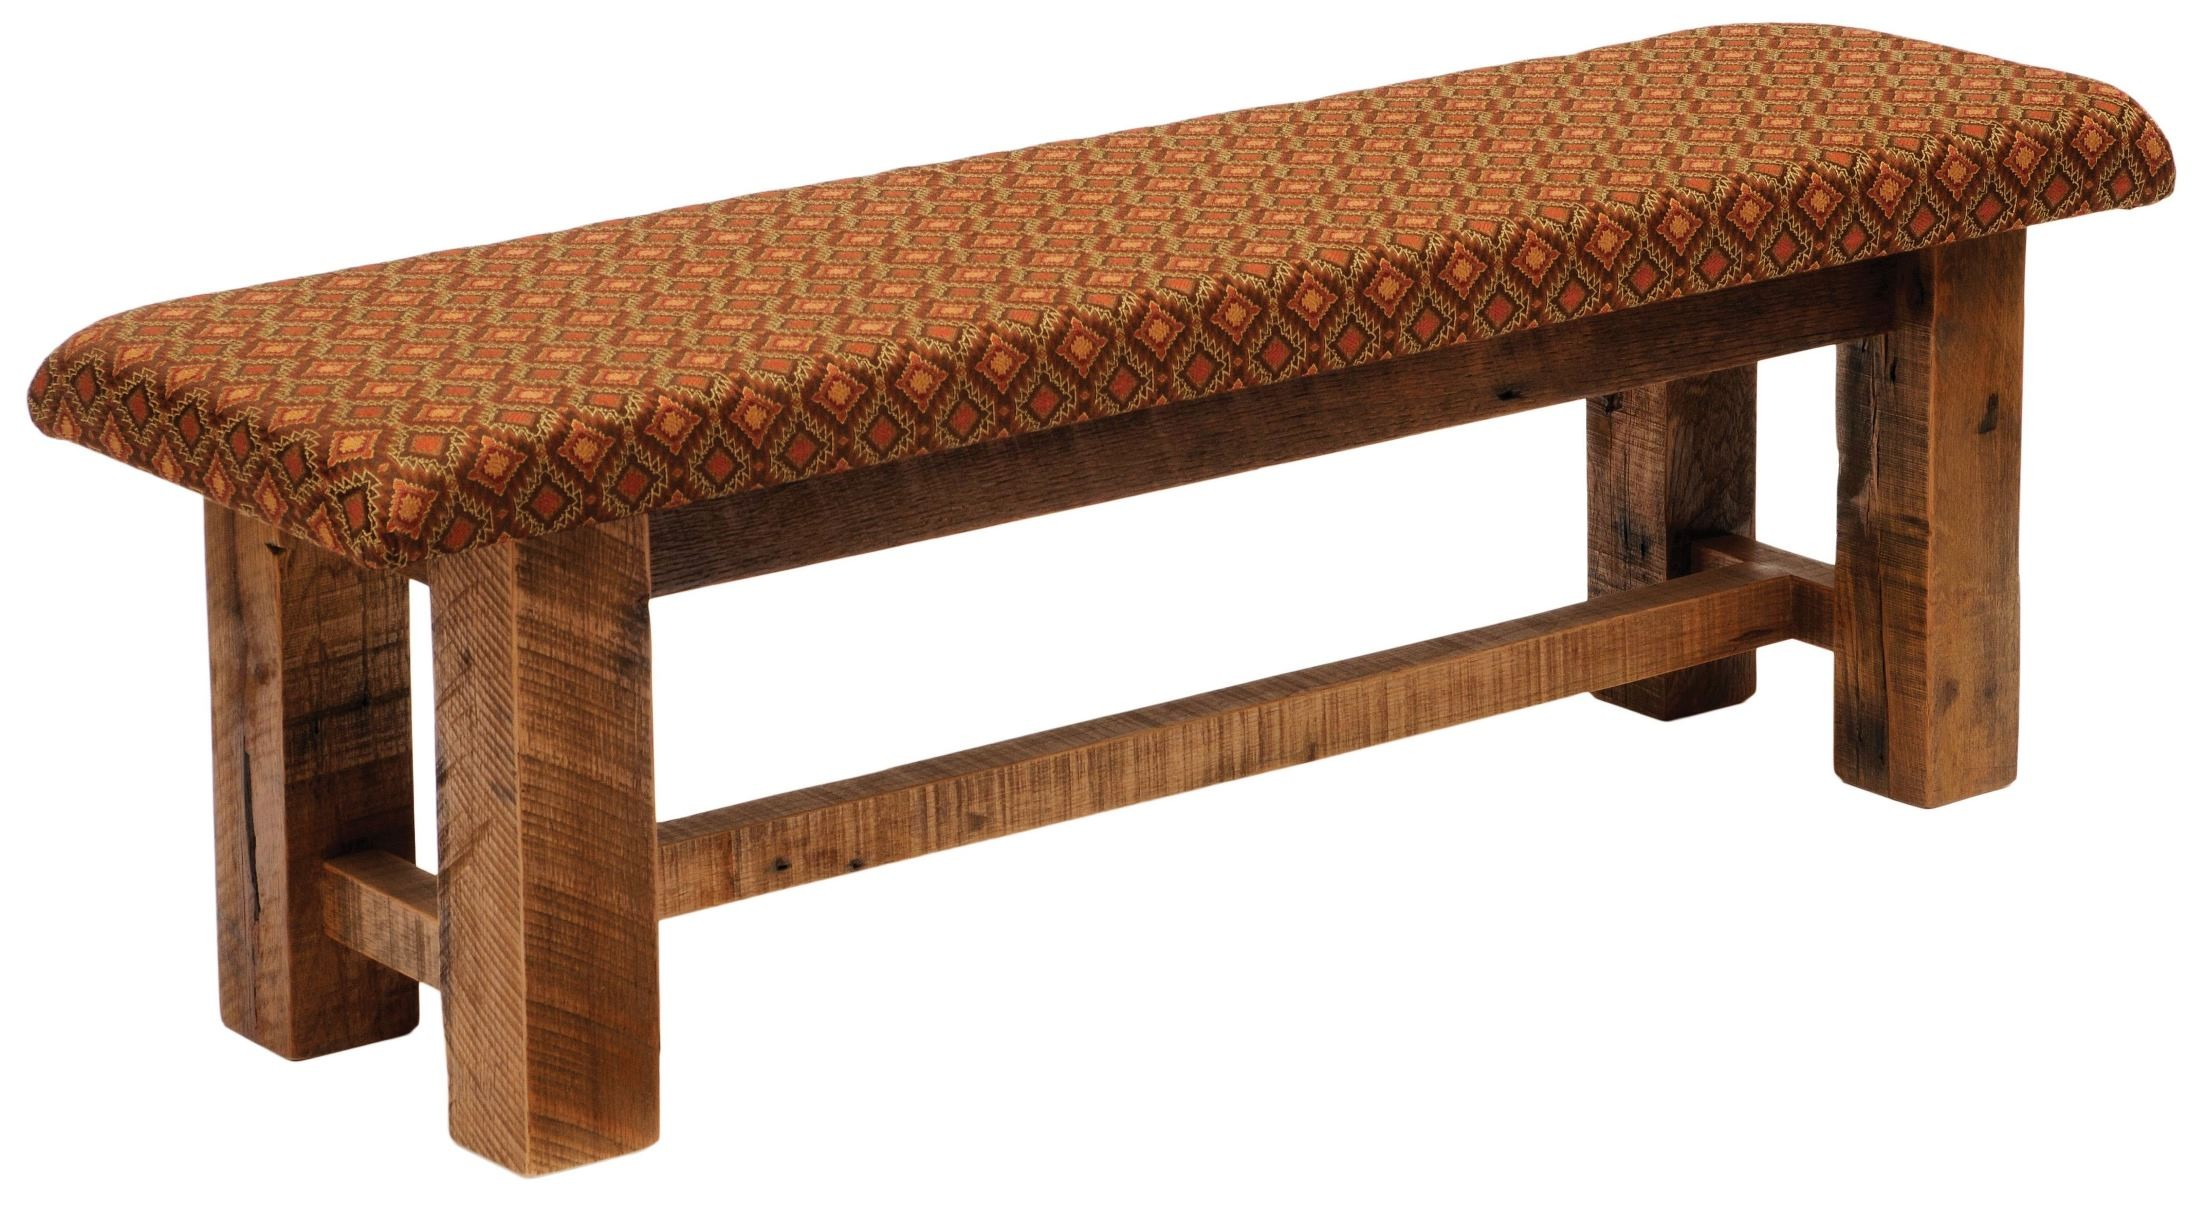 Barnwood Upholstered Seat 72 Standard Fabric Bench From Fireside Lodge B16060 Coleman Furniture